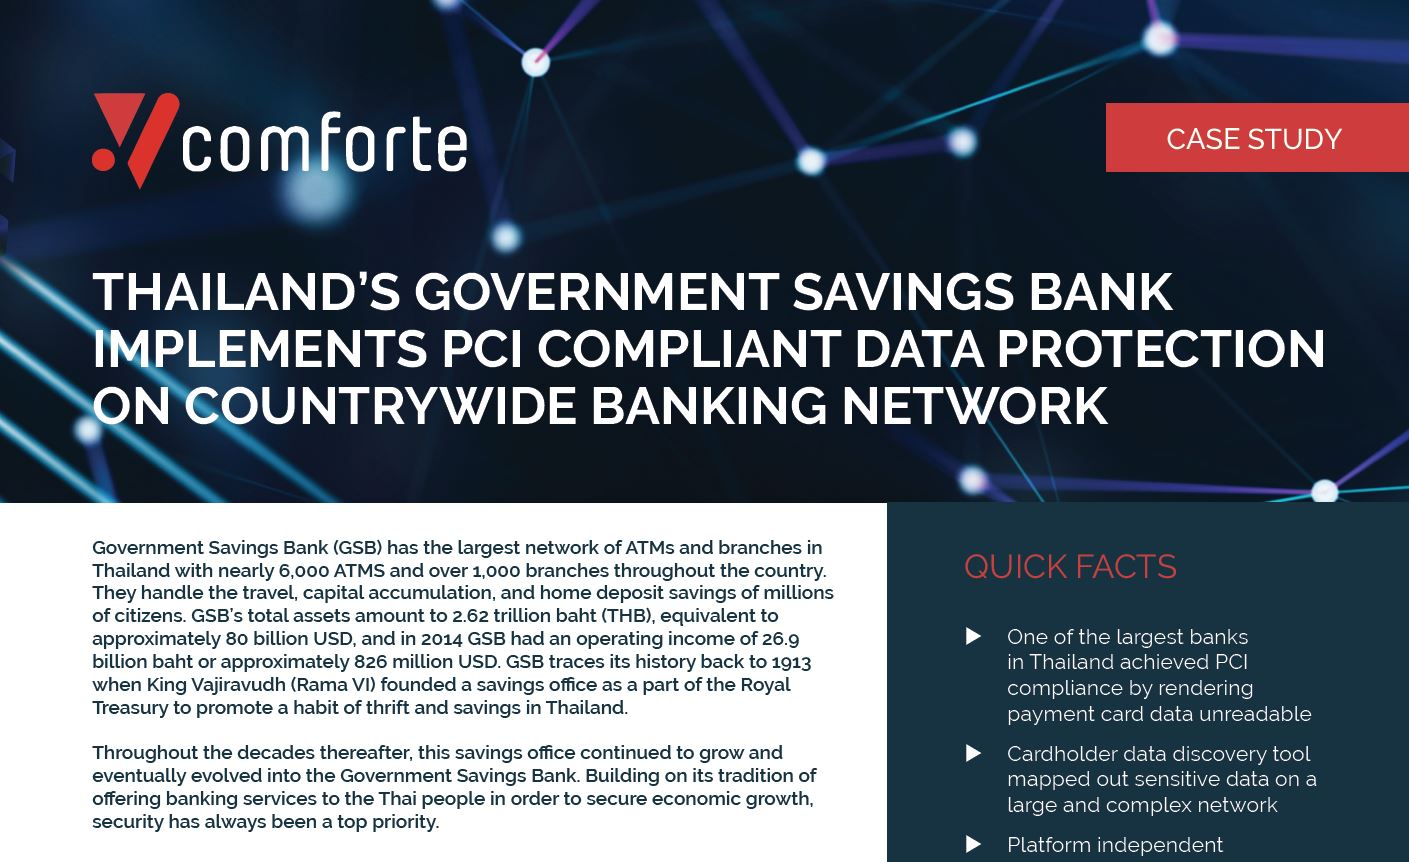 Government Savings Bank Implements PCI Compliant Data Protection